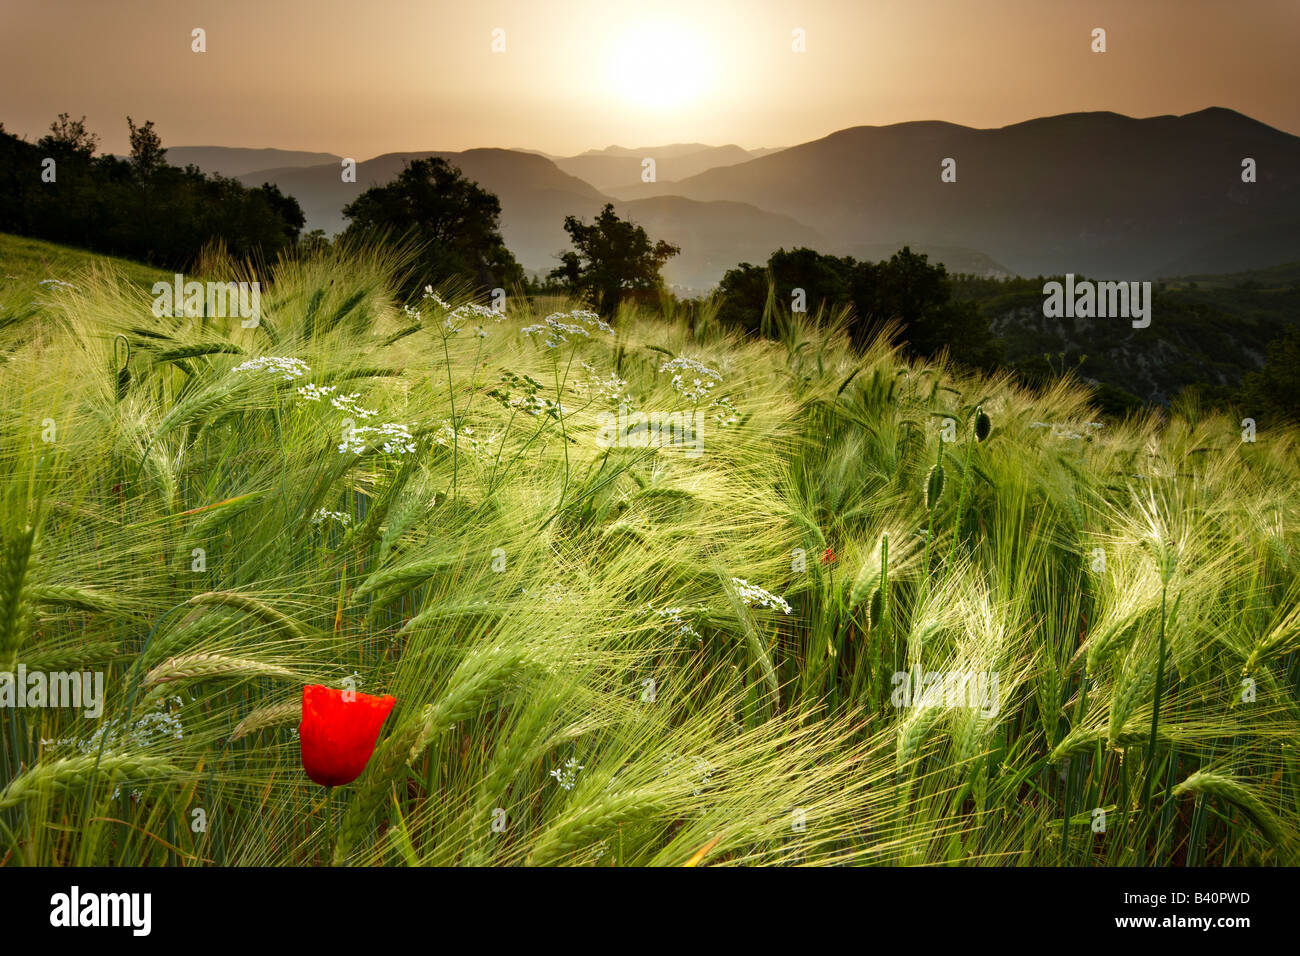 dawn in a barley field overlooking the Valnerina near Meggiano, Umbria, Italy - Stock Image